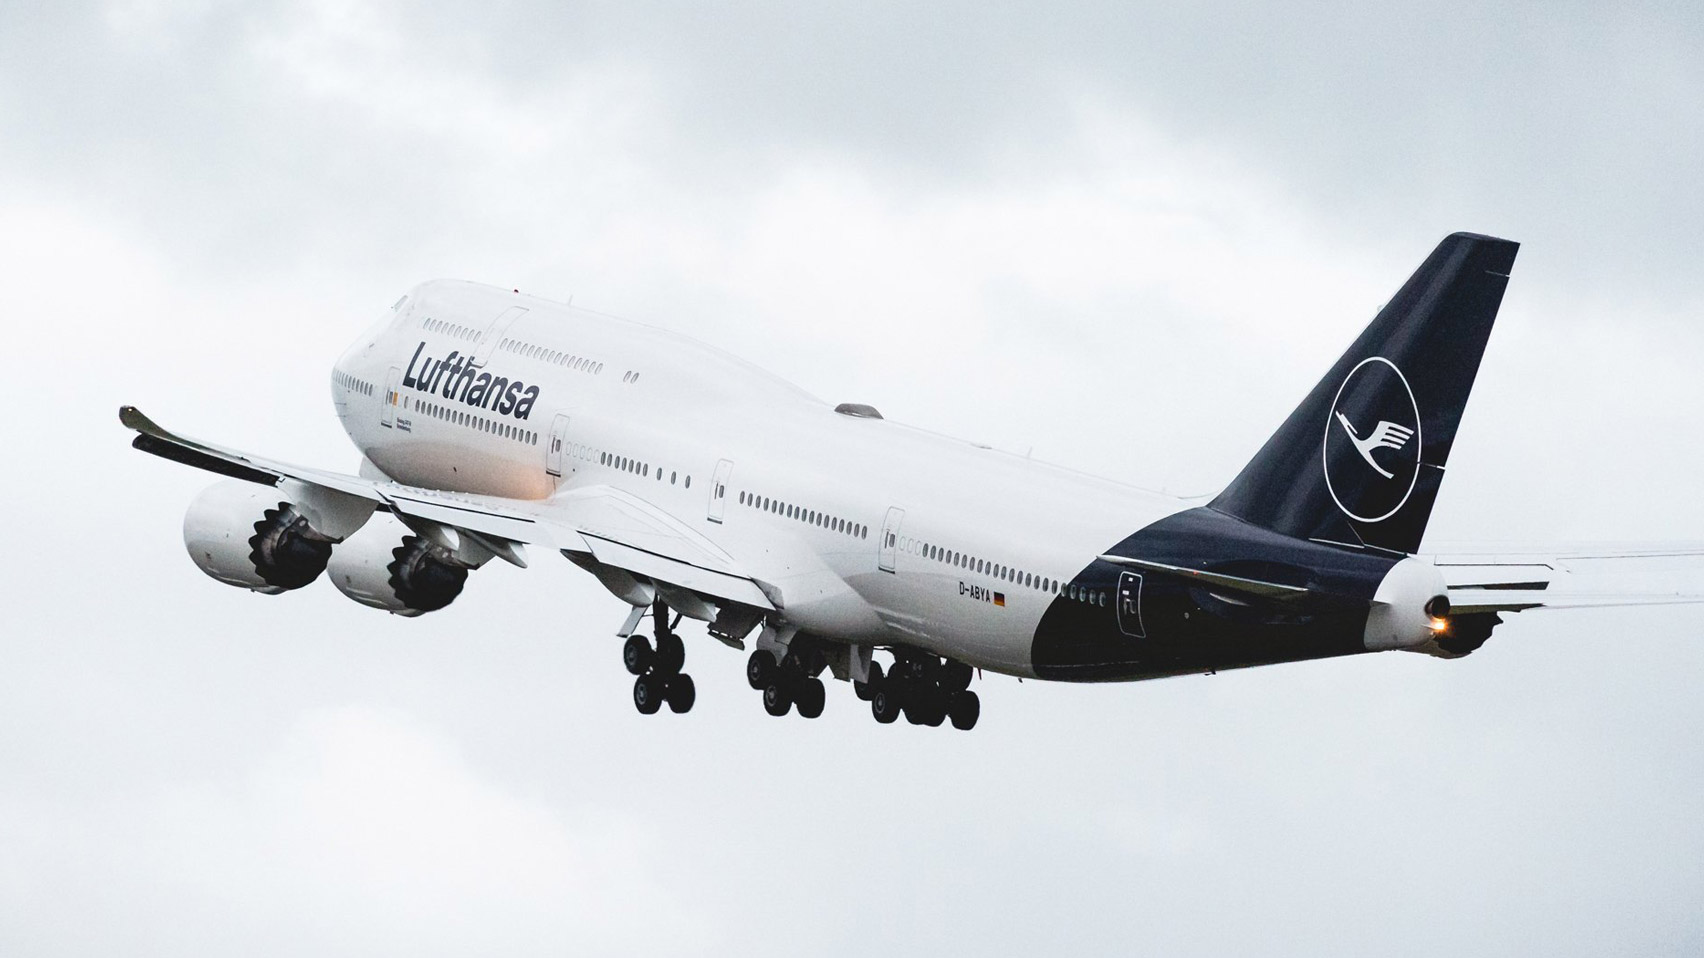 Lufthansa Updates World S Oldest Airline Logo As Part Of Controversial Livery Redesign